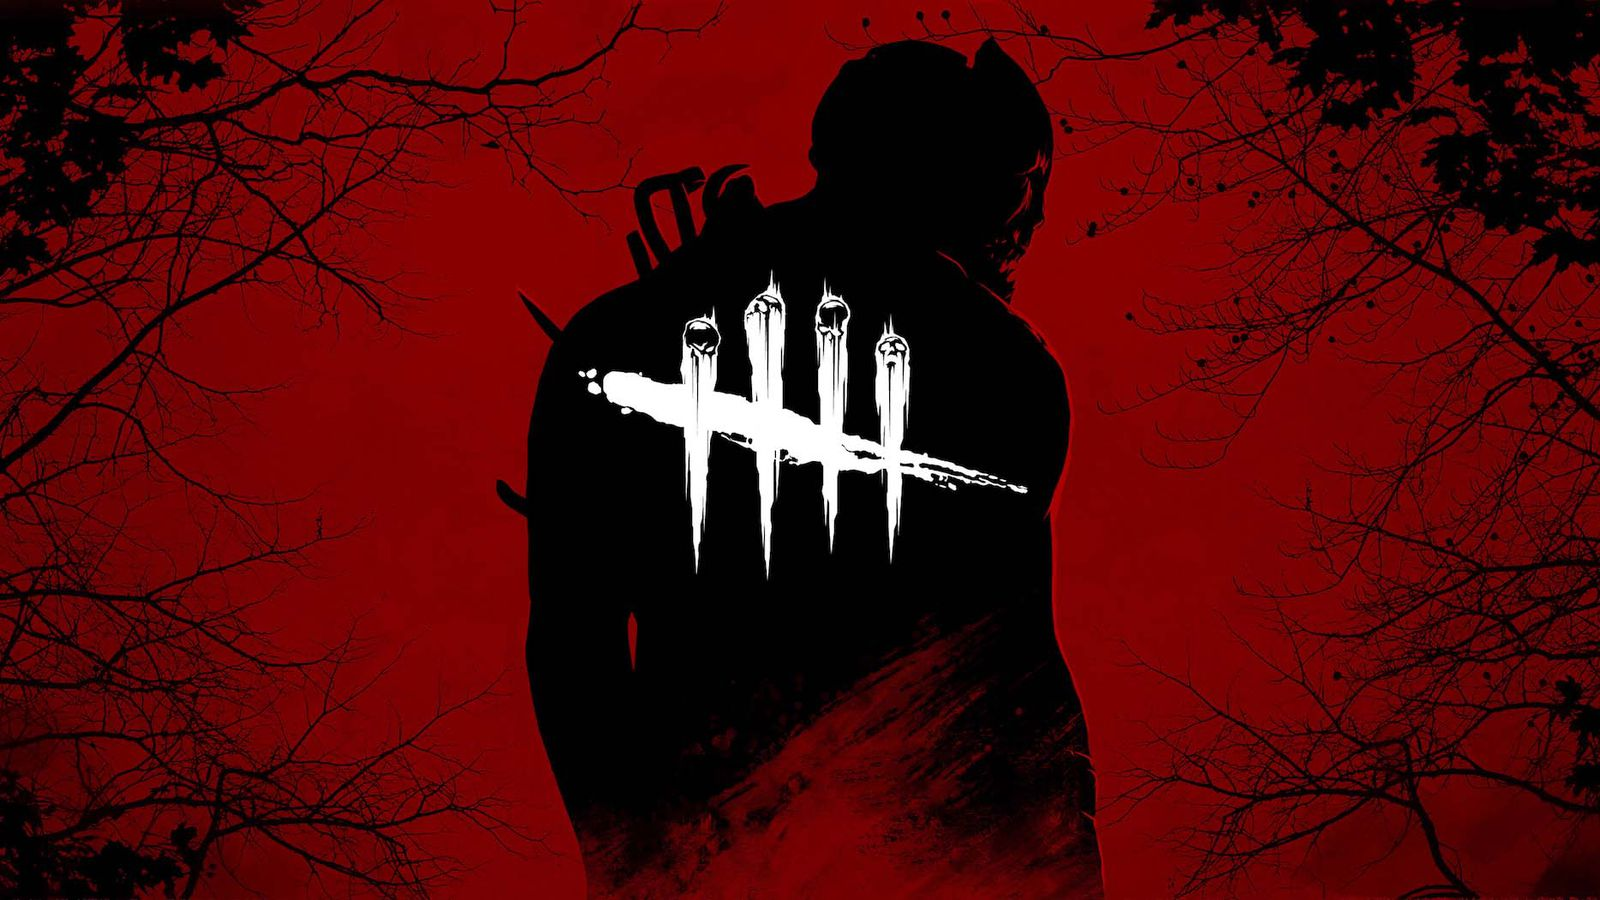 Dead By Daylight Wallpaper: Dead By Daylight Is A Horror Movie Where You're The Victim